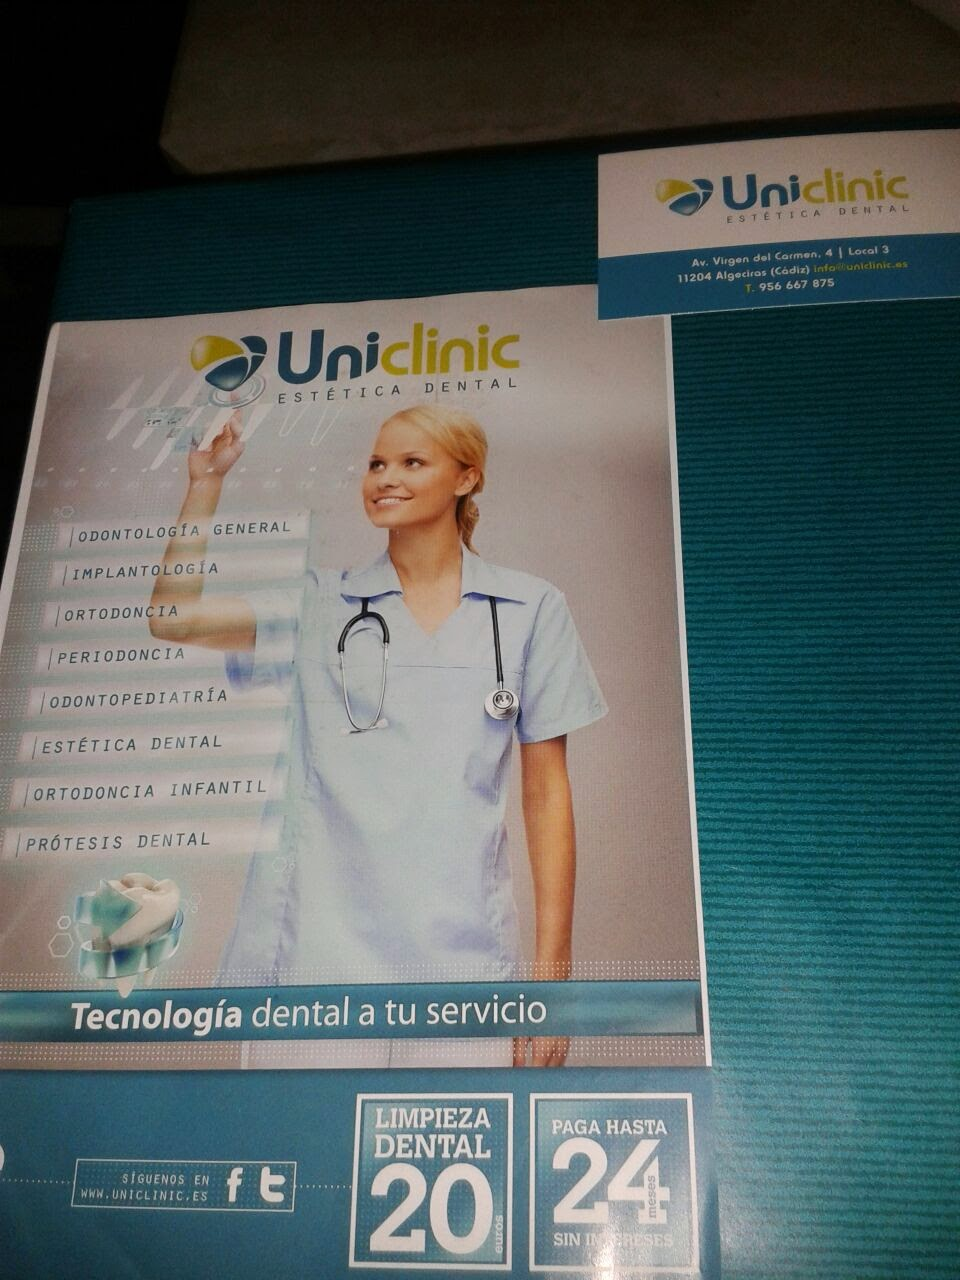 UNICLINIC ESTÉTICA DENTAL - ALGECIRAS